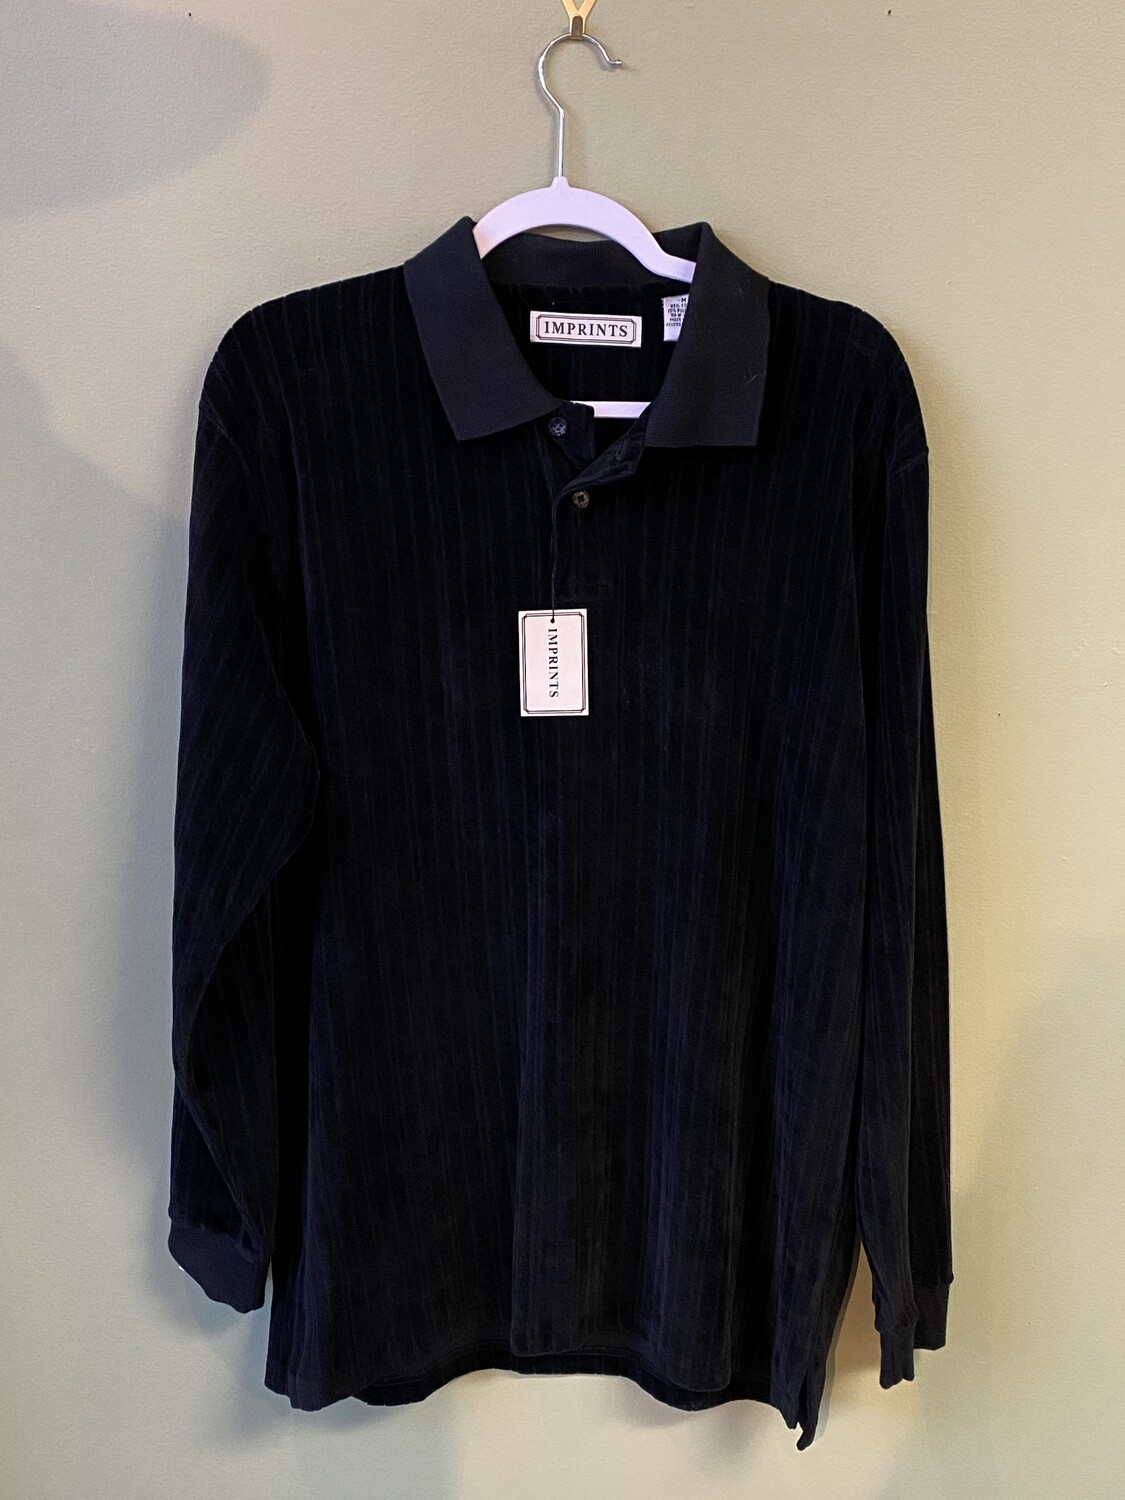 Imprints Cotton-blend Black Polo with Knit Collar and Long Sleeves, Size M, NWT